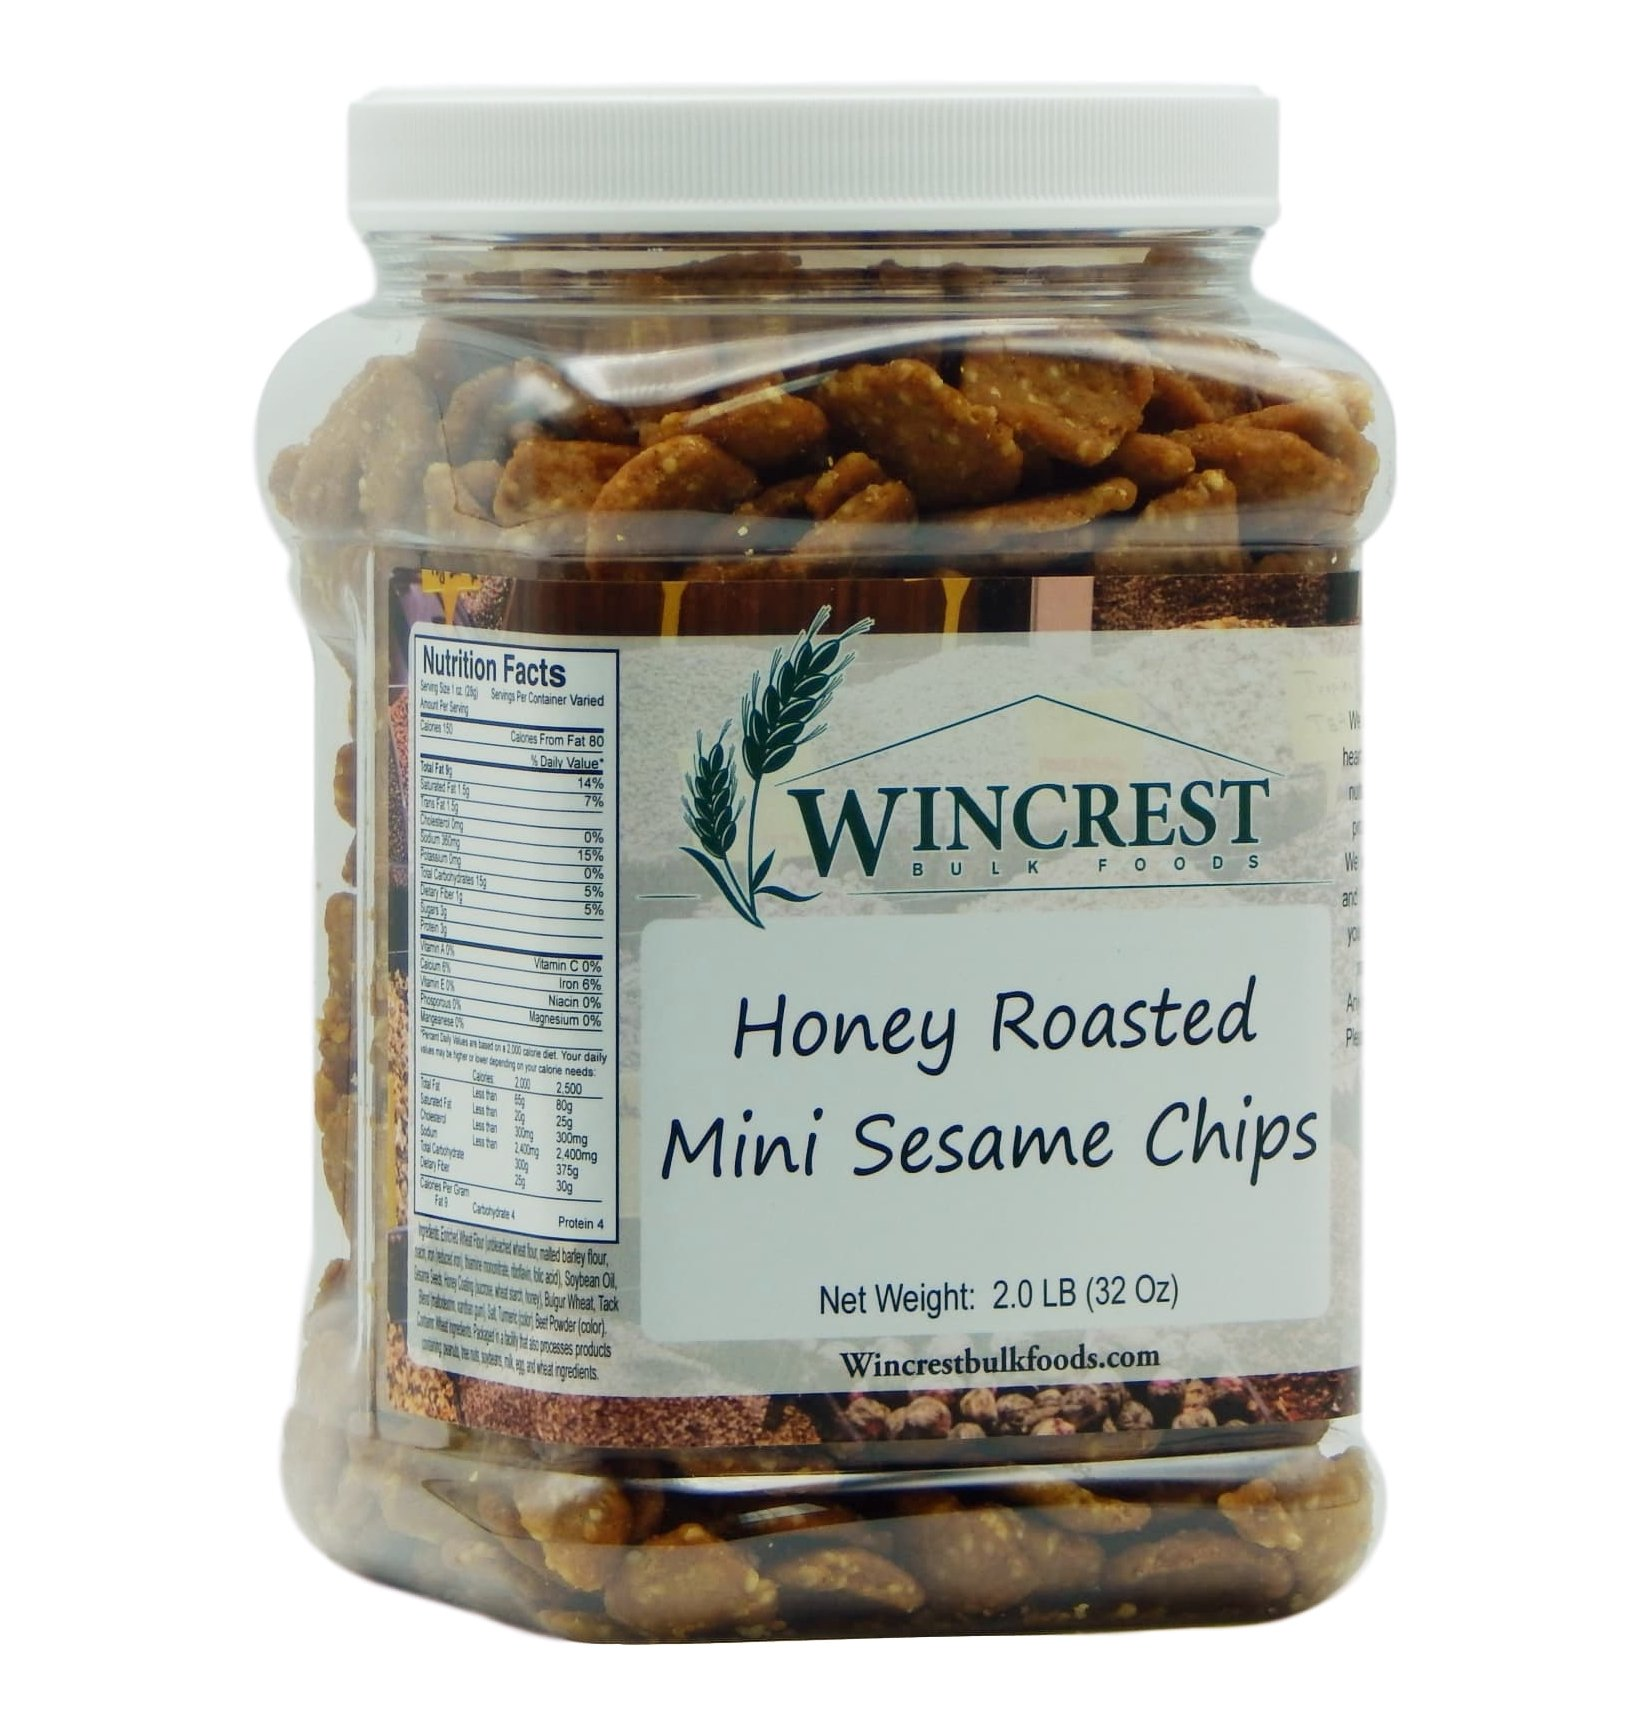 Honey Roasted Sesame Chips - 2 Lb Tub by WinCrest BulkFoods (Image #1)